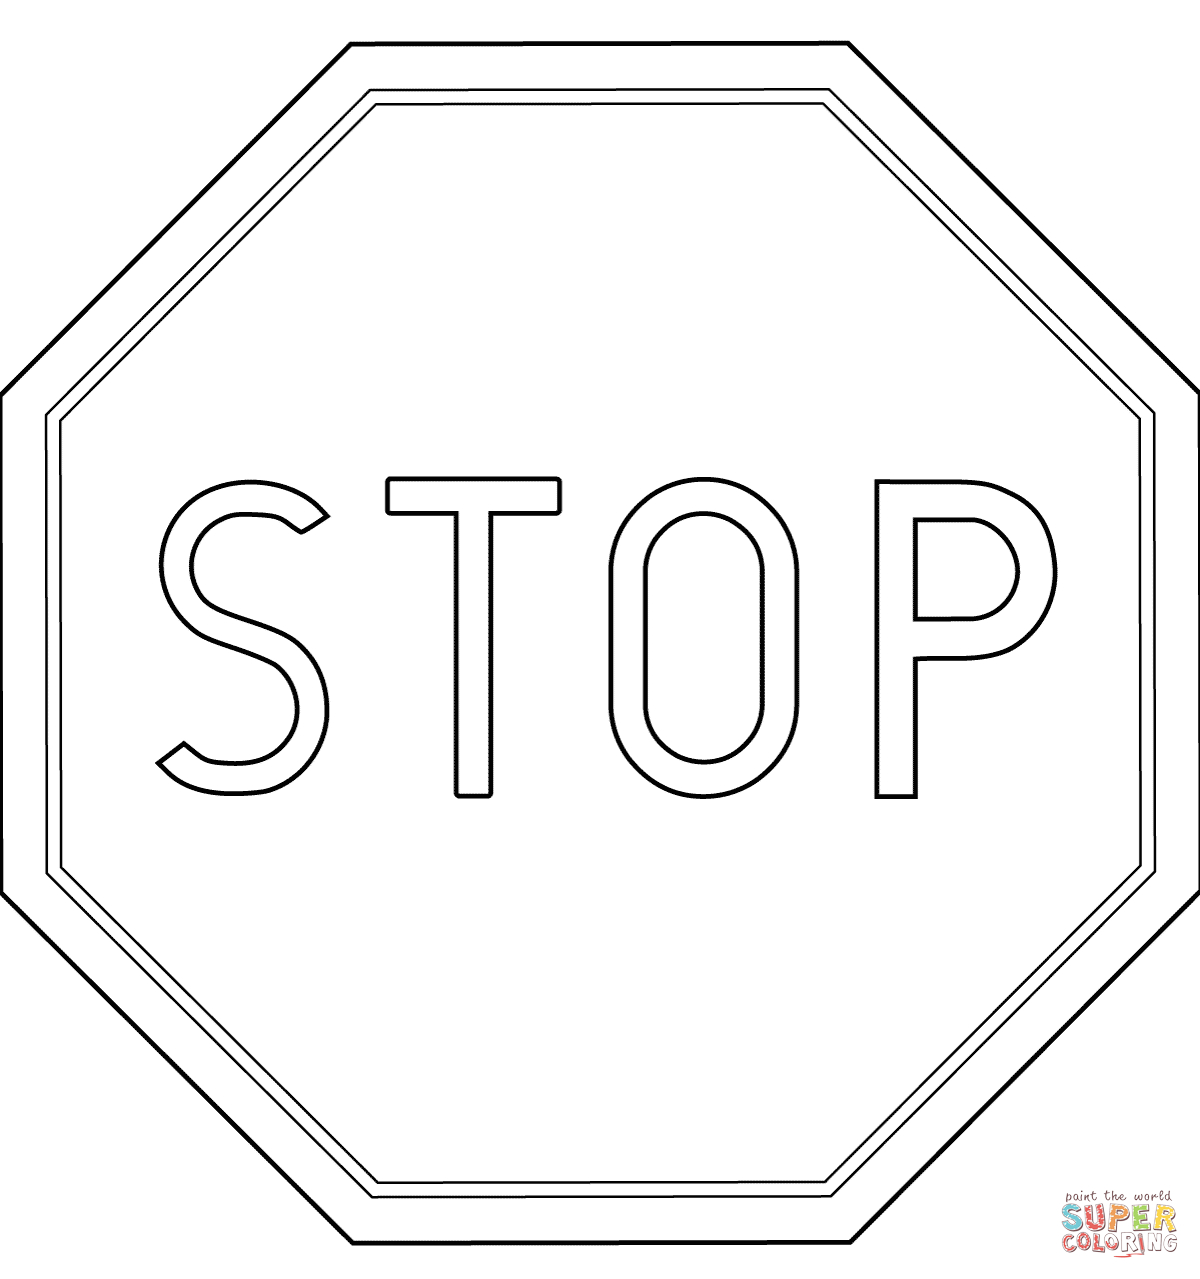 Poland Stop Road Sign B-20 Coloring Page   Free Printable Coloring Pages - Free Printable Stop Sign To Color